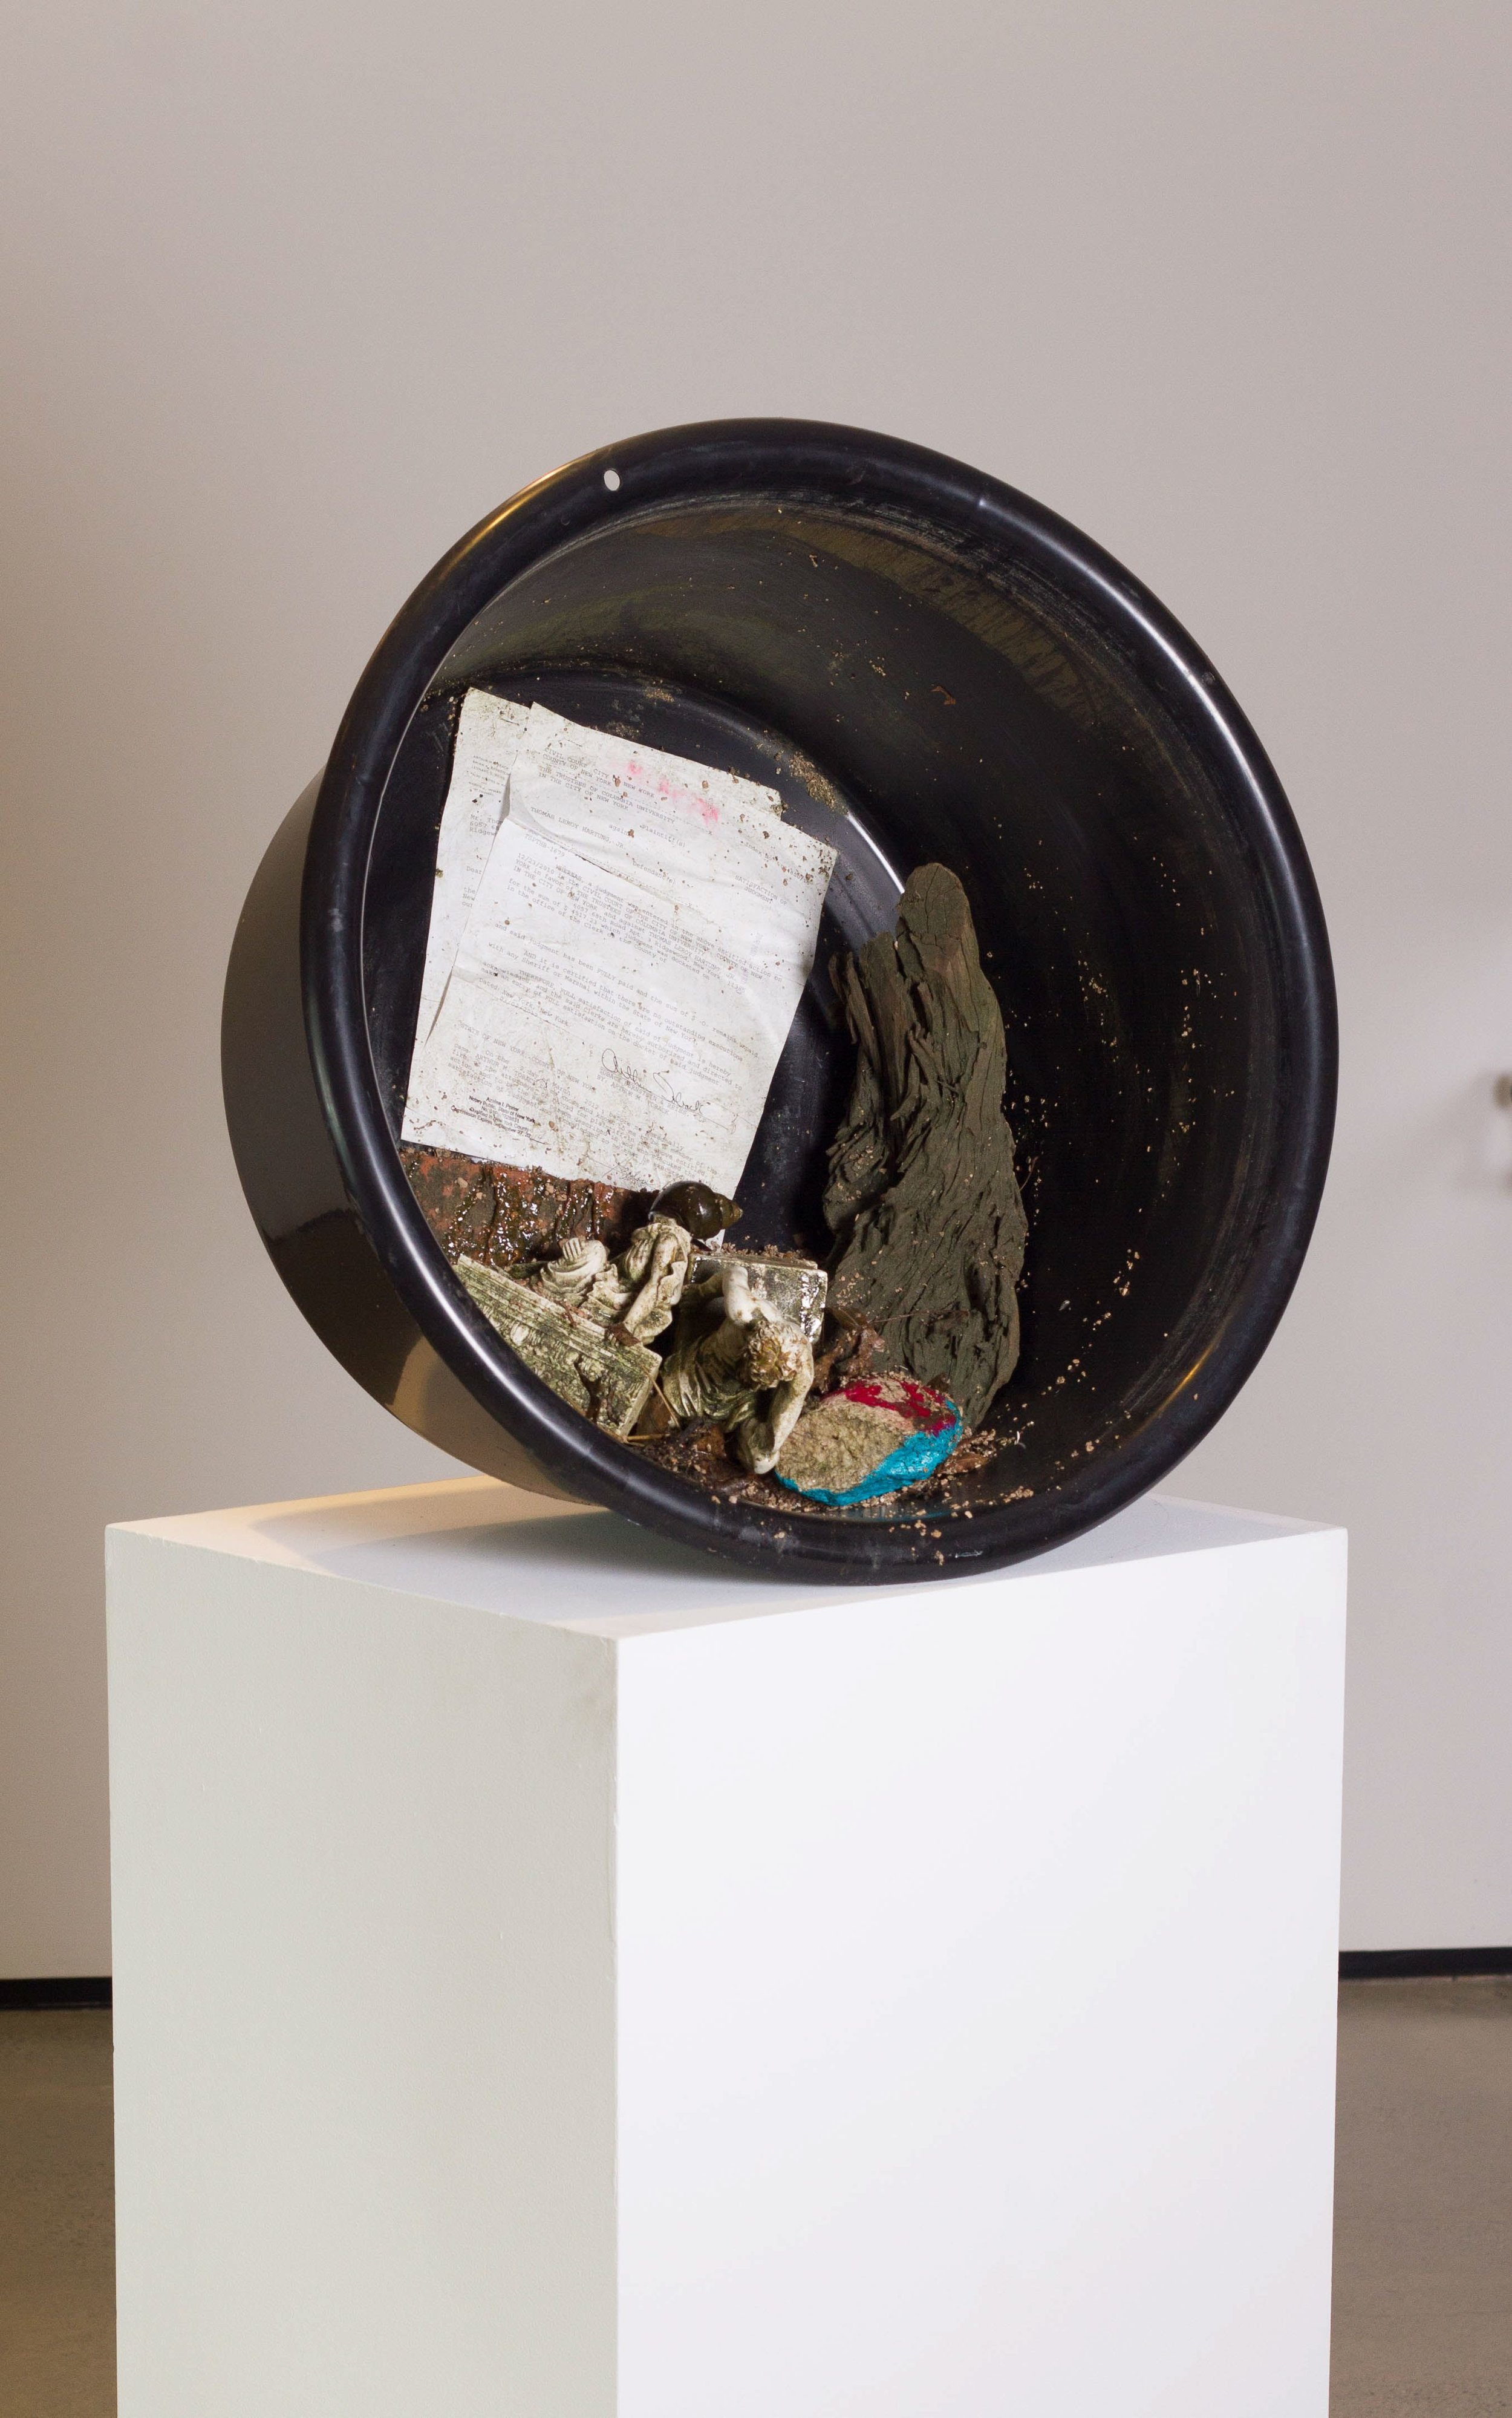 Tommy Hartung    The Trustees , 2018  Found objects, gravel, letter, rubber bucket, acrylic, varnish  25.5 x 25.125 x 12.25in. (64.8 x 63.8 x 31.1cm)